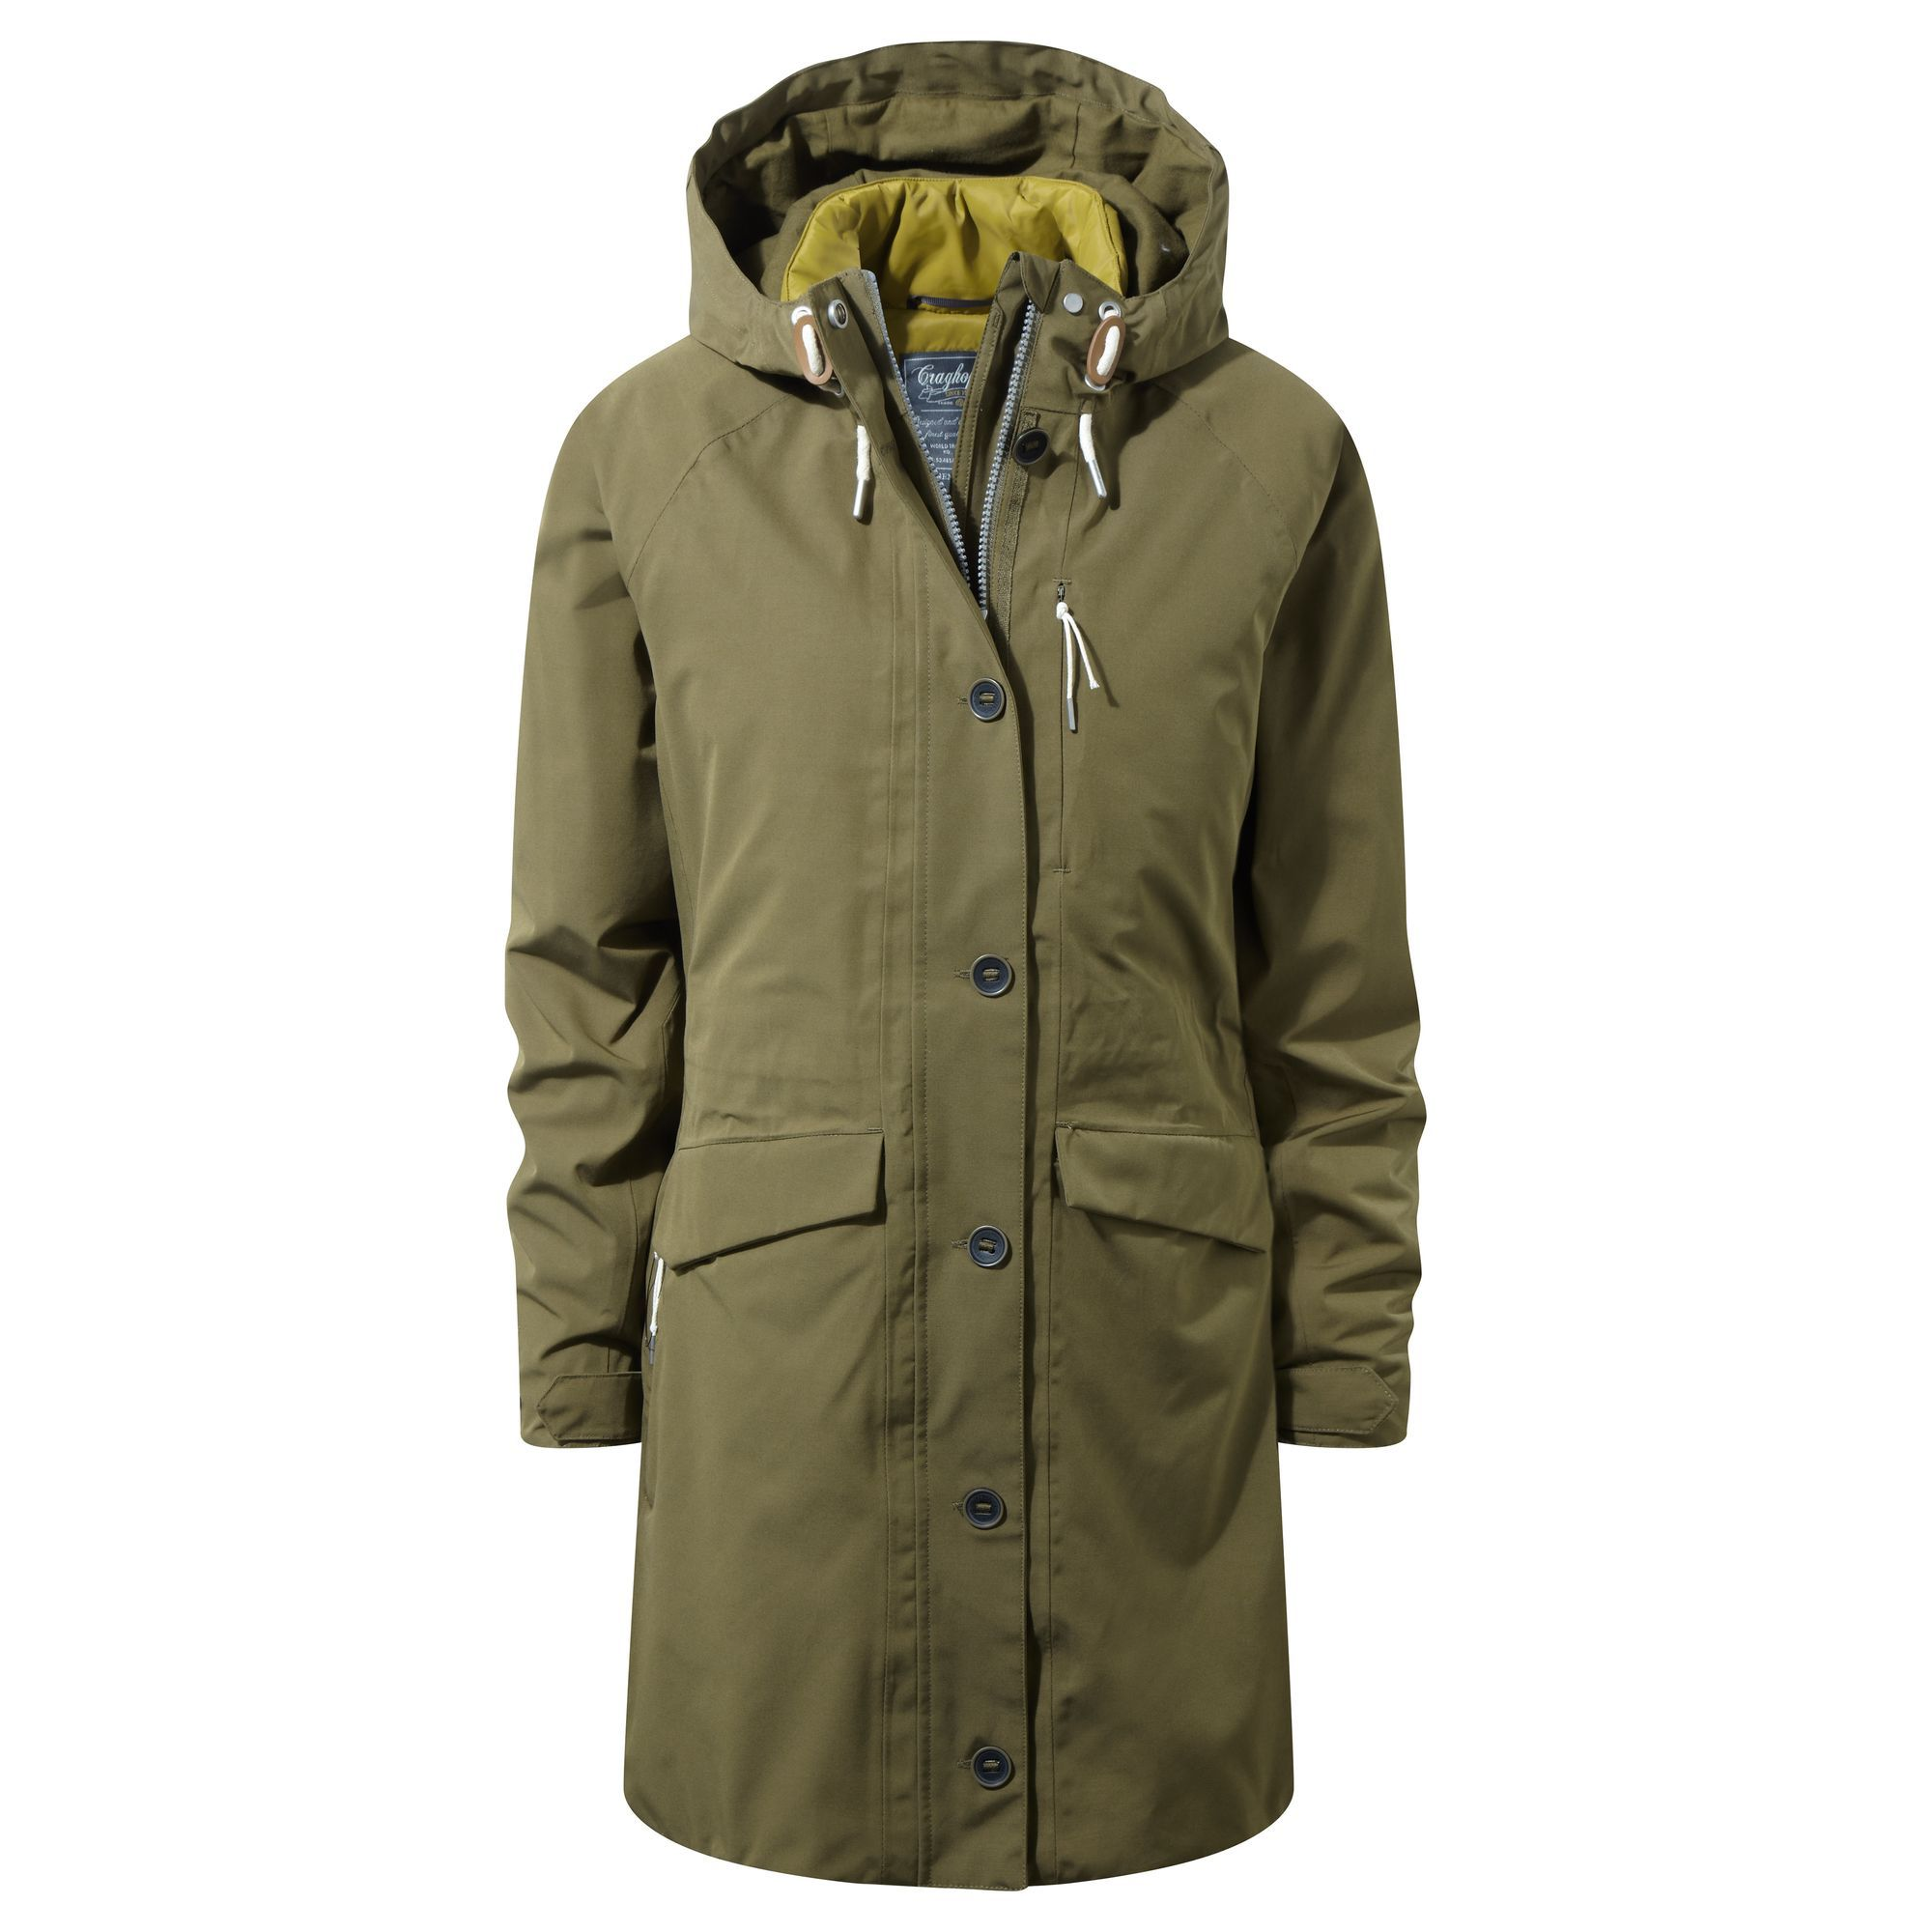 09eeac6f9e81 The North Face Mens Selsley Triclimate Jacket. Craghoppers 365 3 in 1 Womens  Dark Moss Jacket